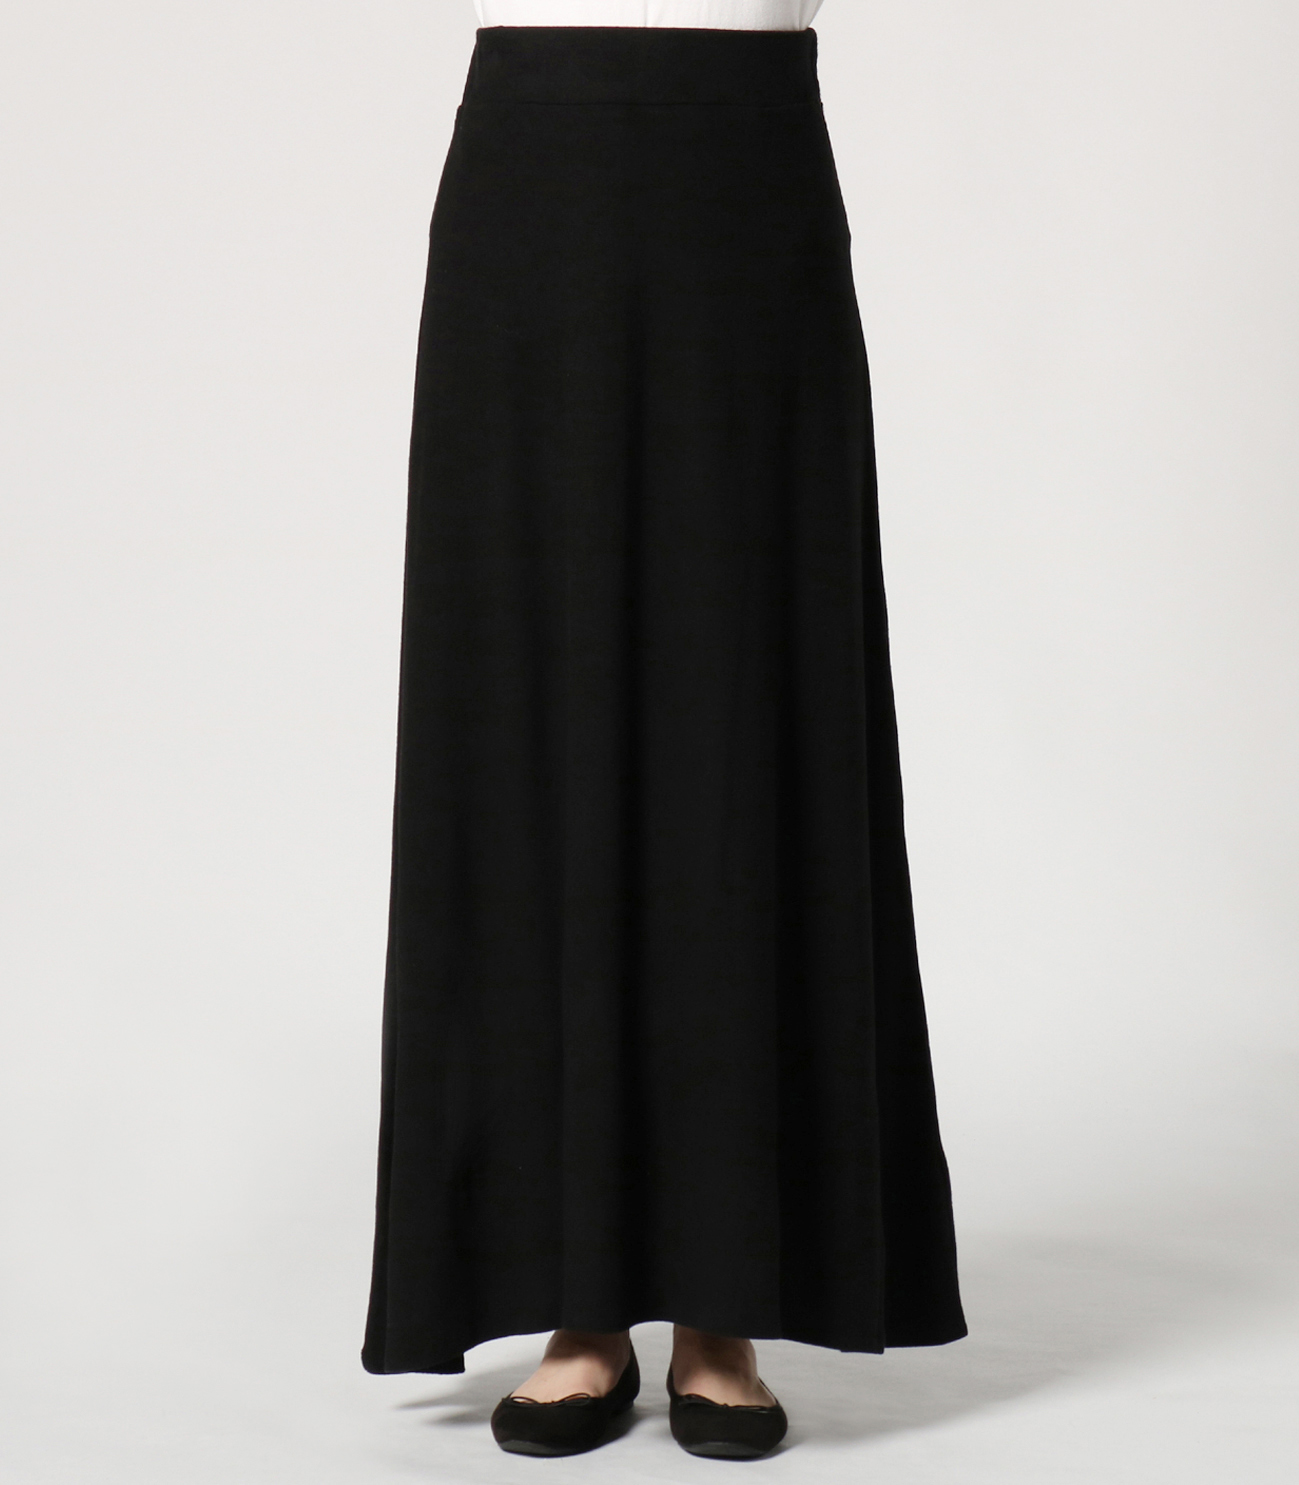 brushed sweater long skirt 詳細画像 black 2